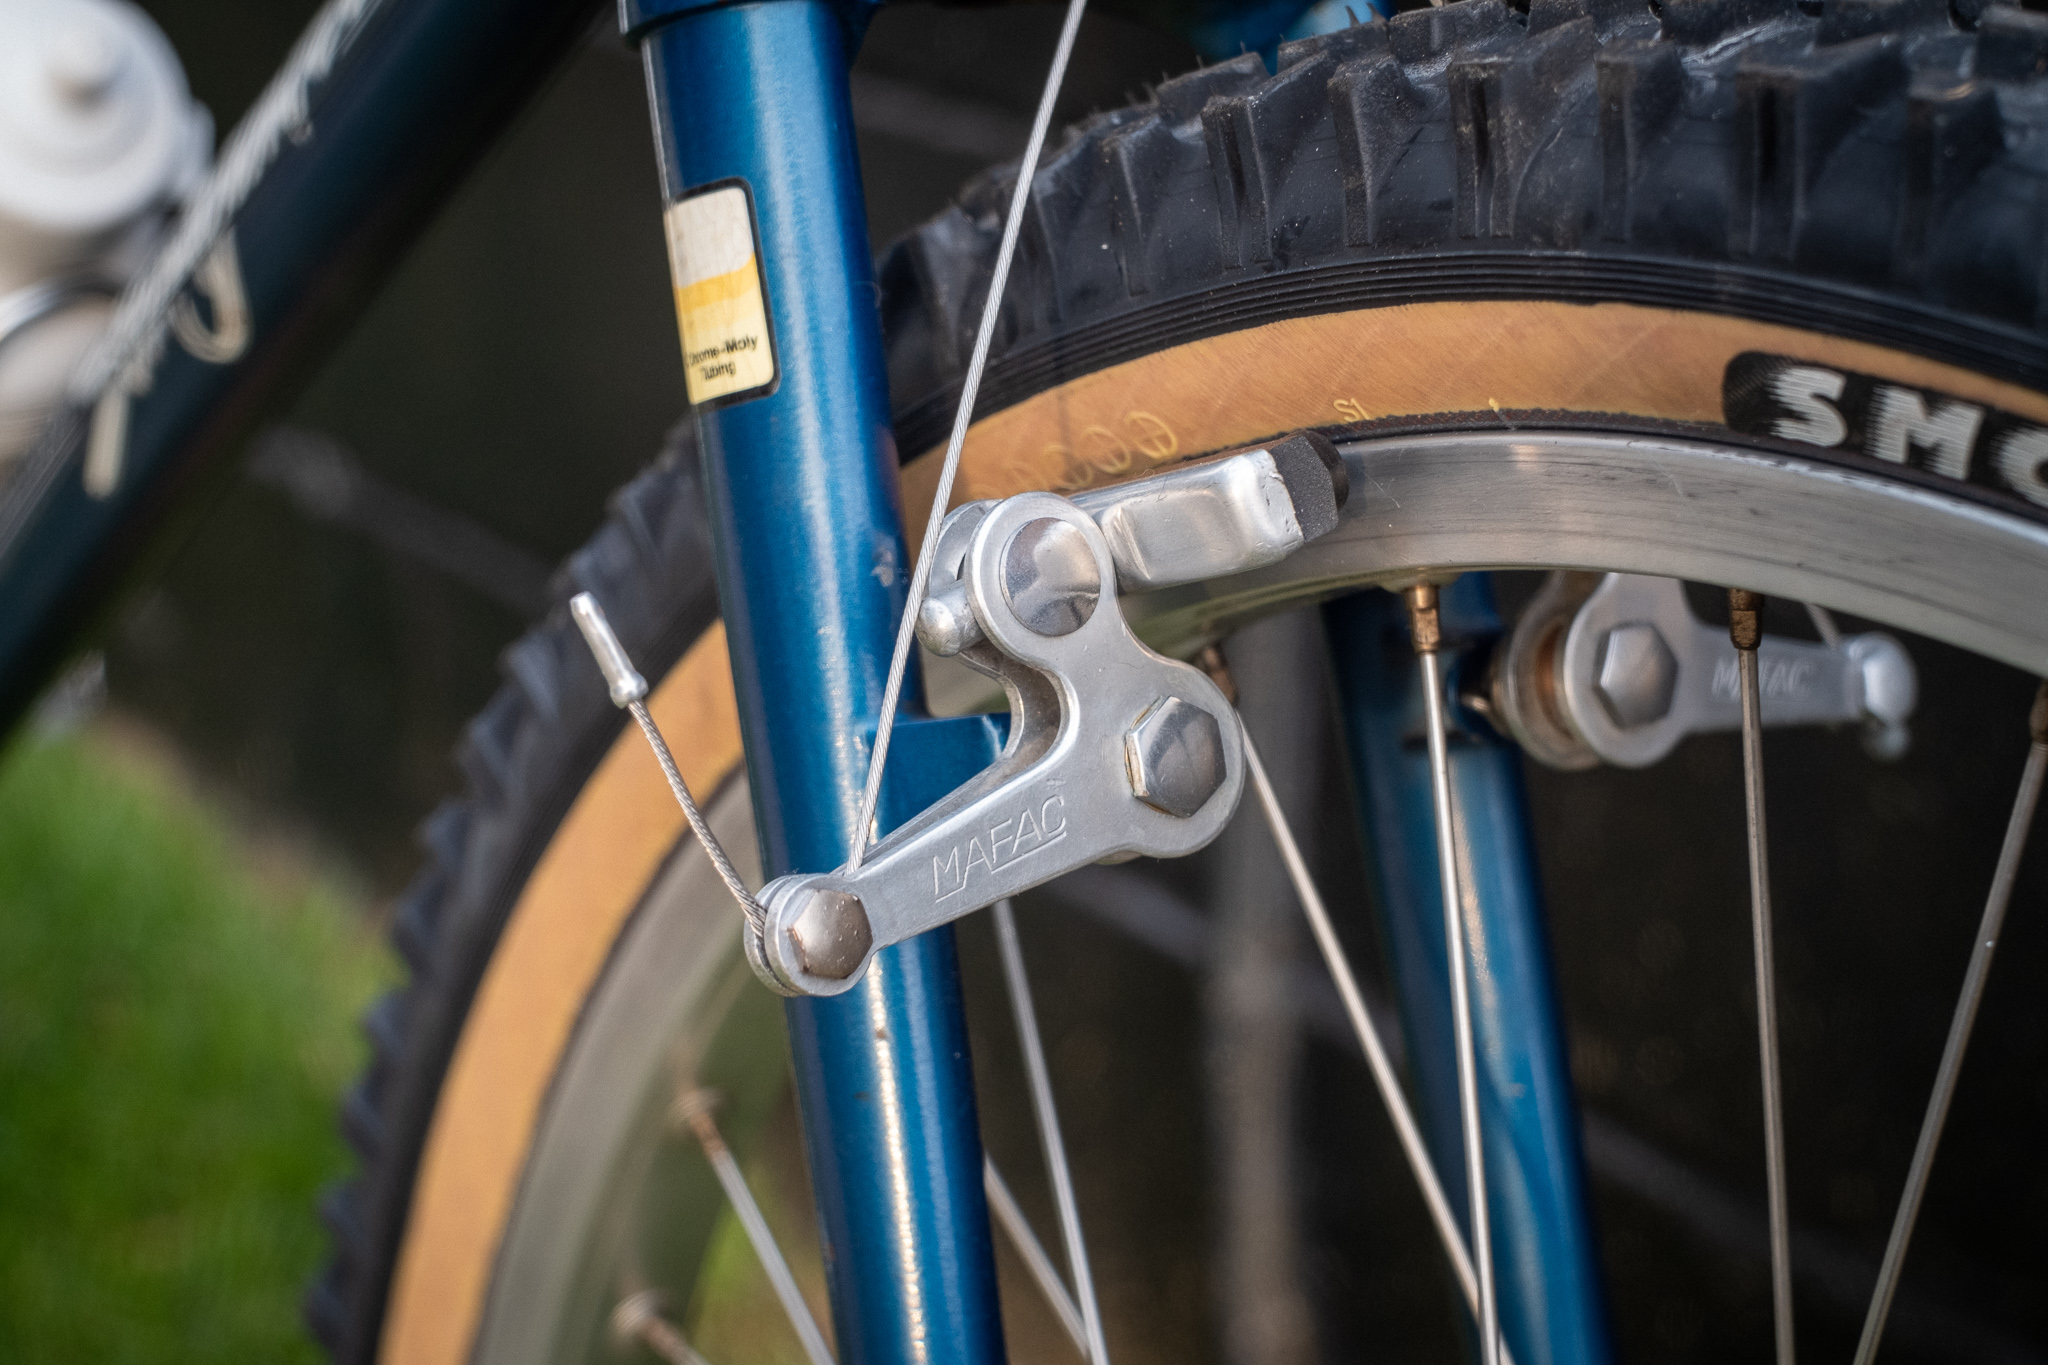 1981 Specialized Stumpjumper Mafac brake detail